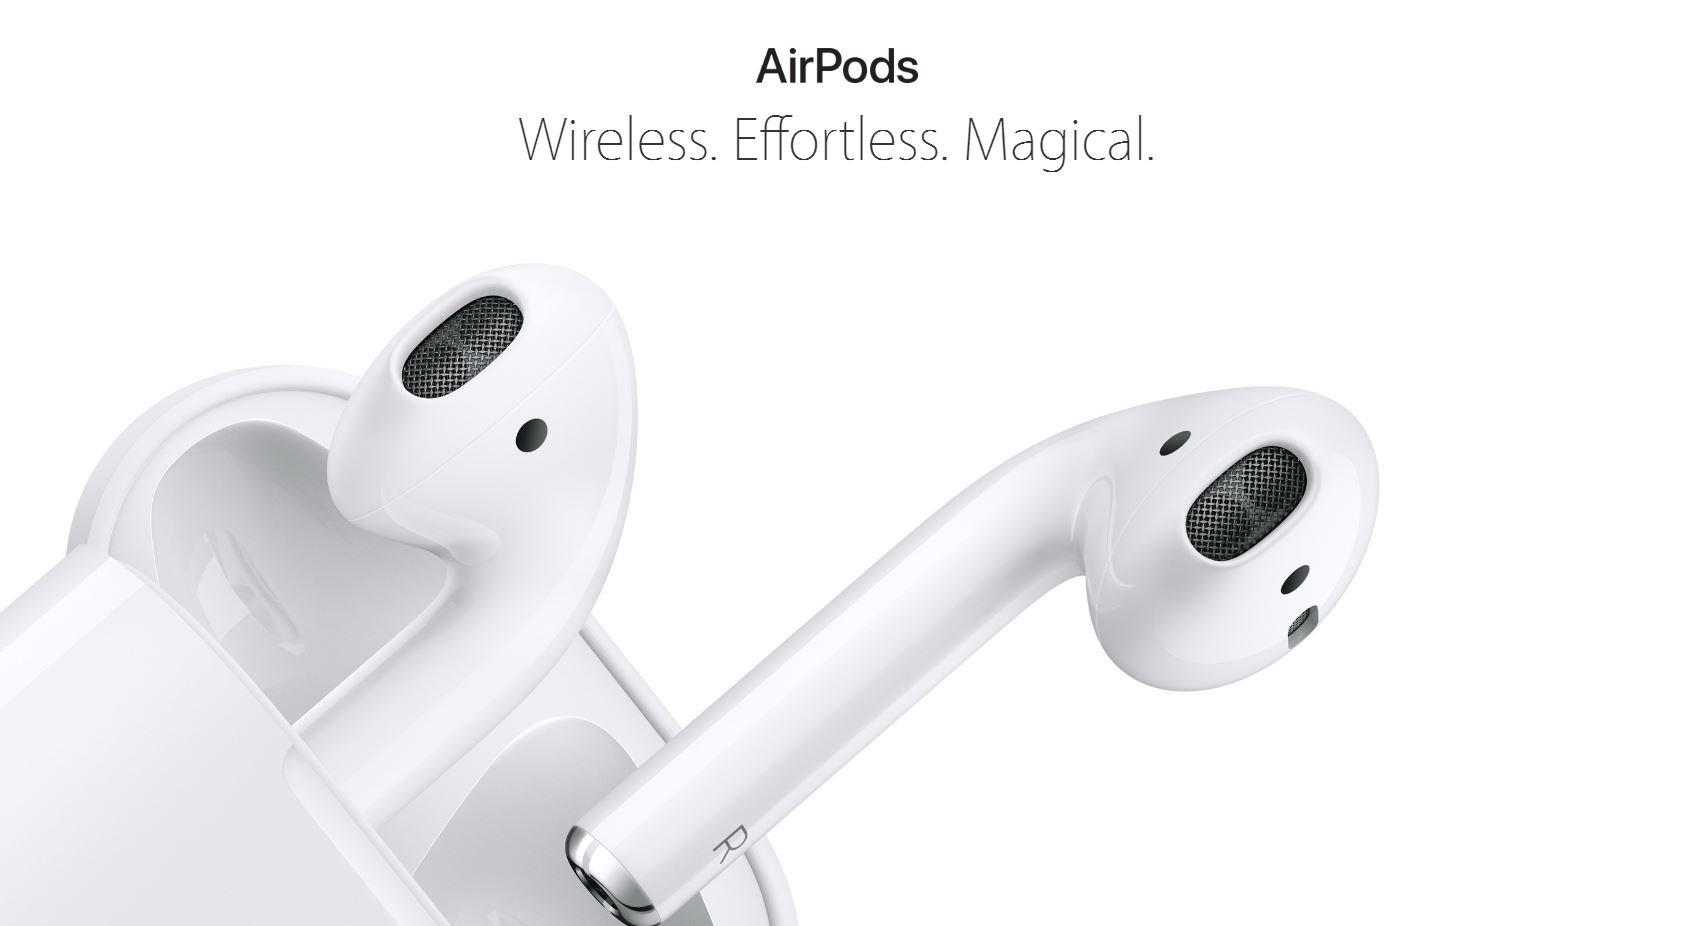 Le AirPods aprono le strade al futuro di Apple